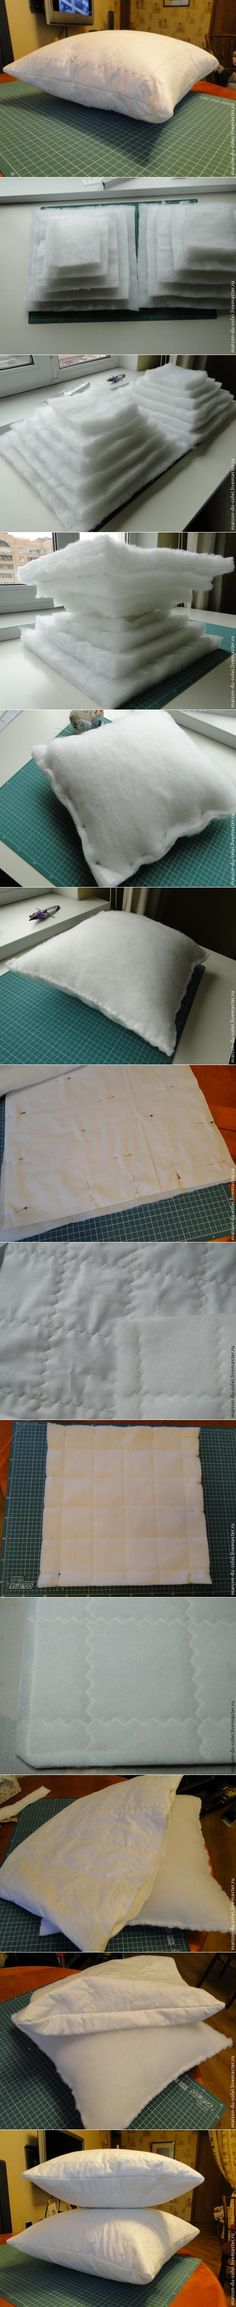 cushion diy tutorial